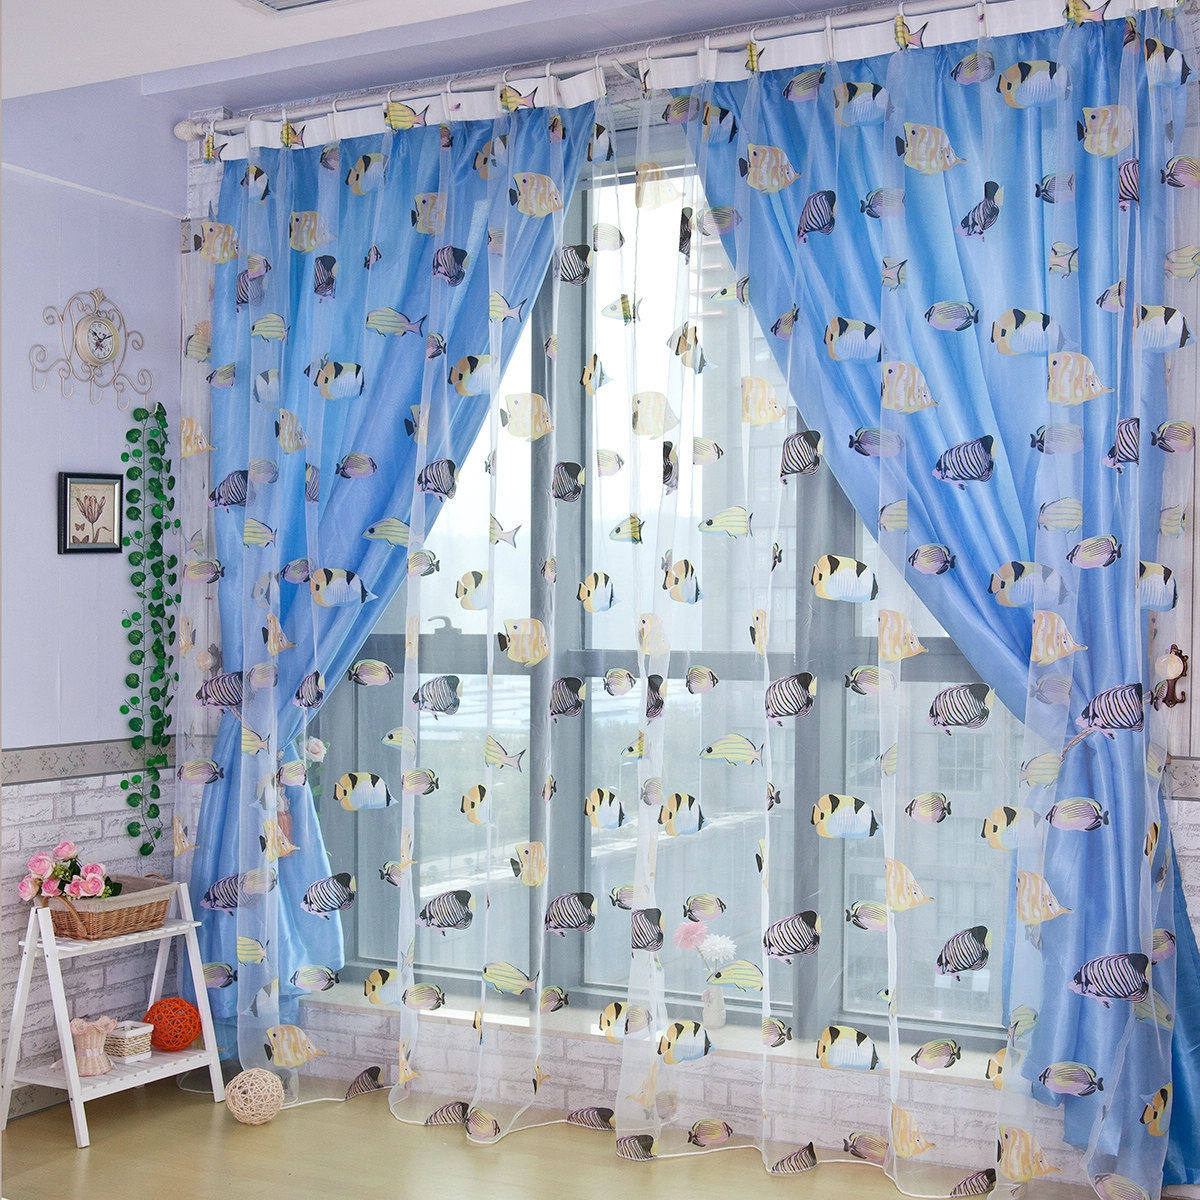 Boys Bedroom Creative Bedroom Interior Design Ideas With Blue Throughout Blue Curtains For Boys Room (Image 11 of 25)